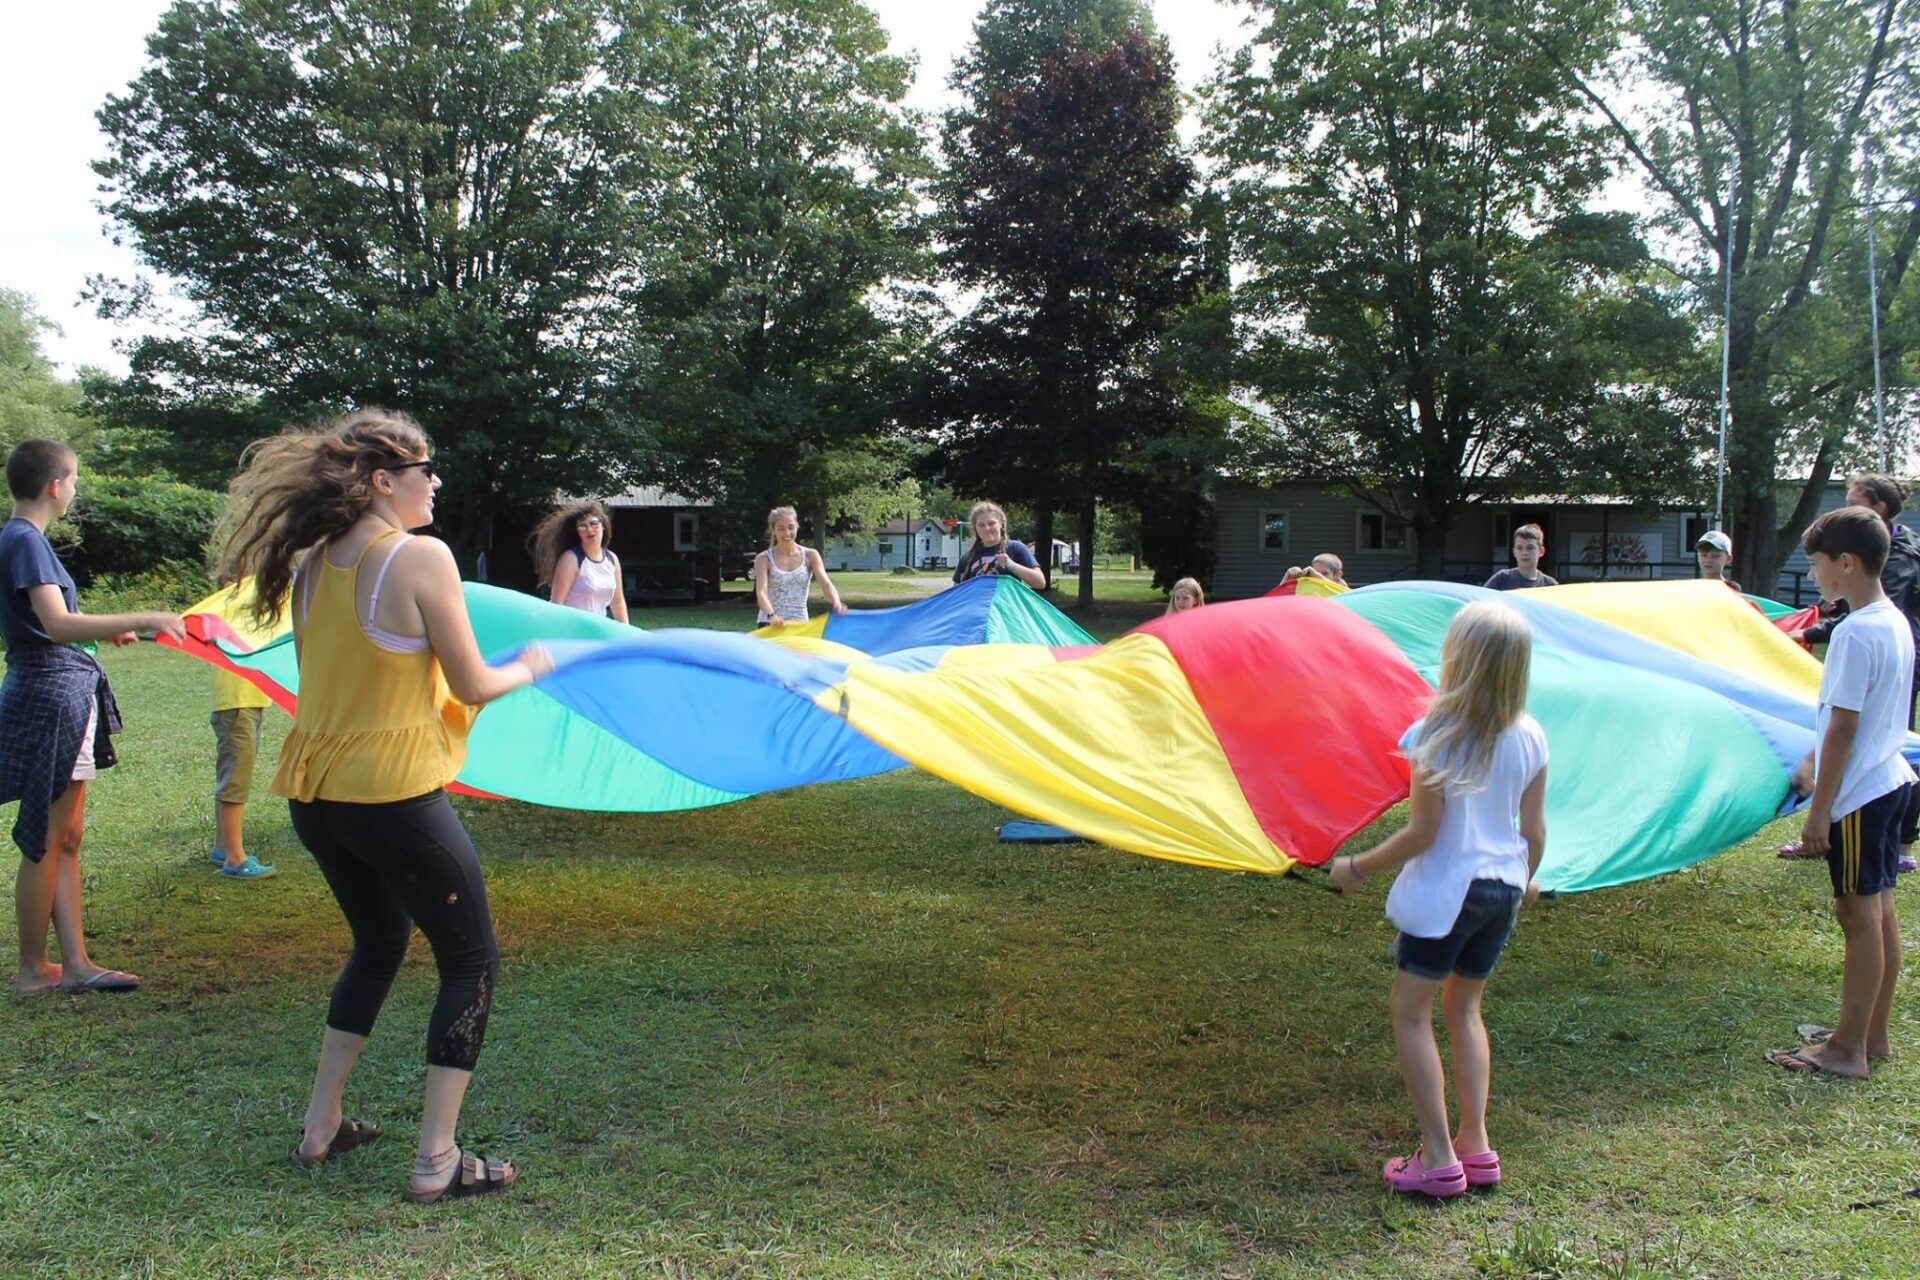 Campers playing with a colorful parachute